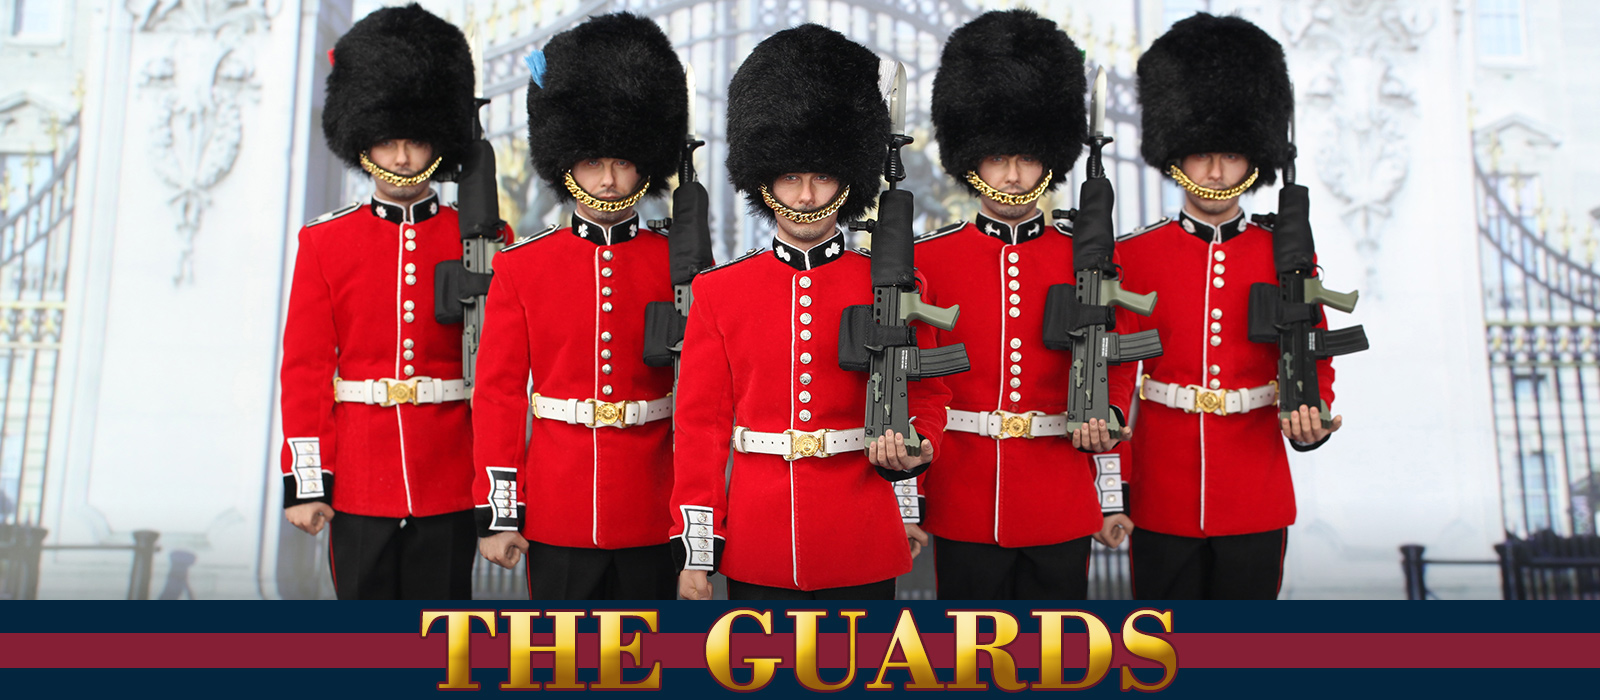 K80134 The Guards